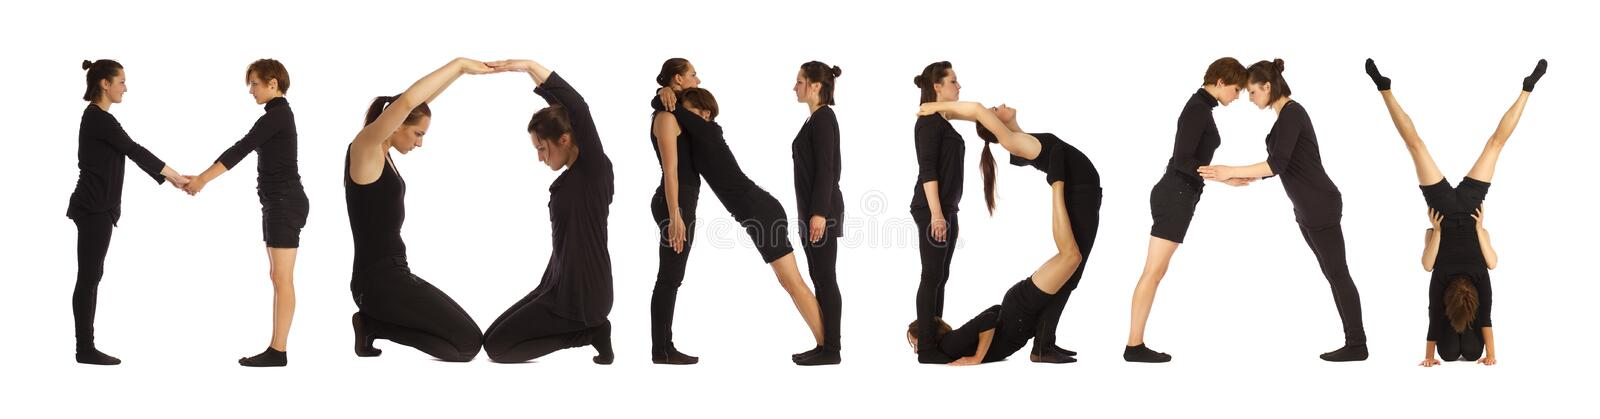 Black dressed people forming MONDAY word. Over white background royalty free stock photos